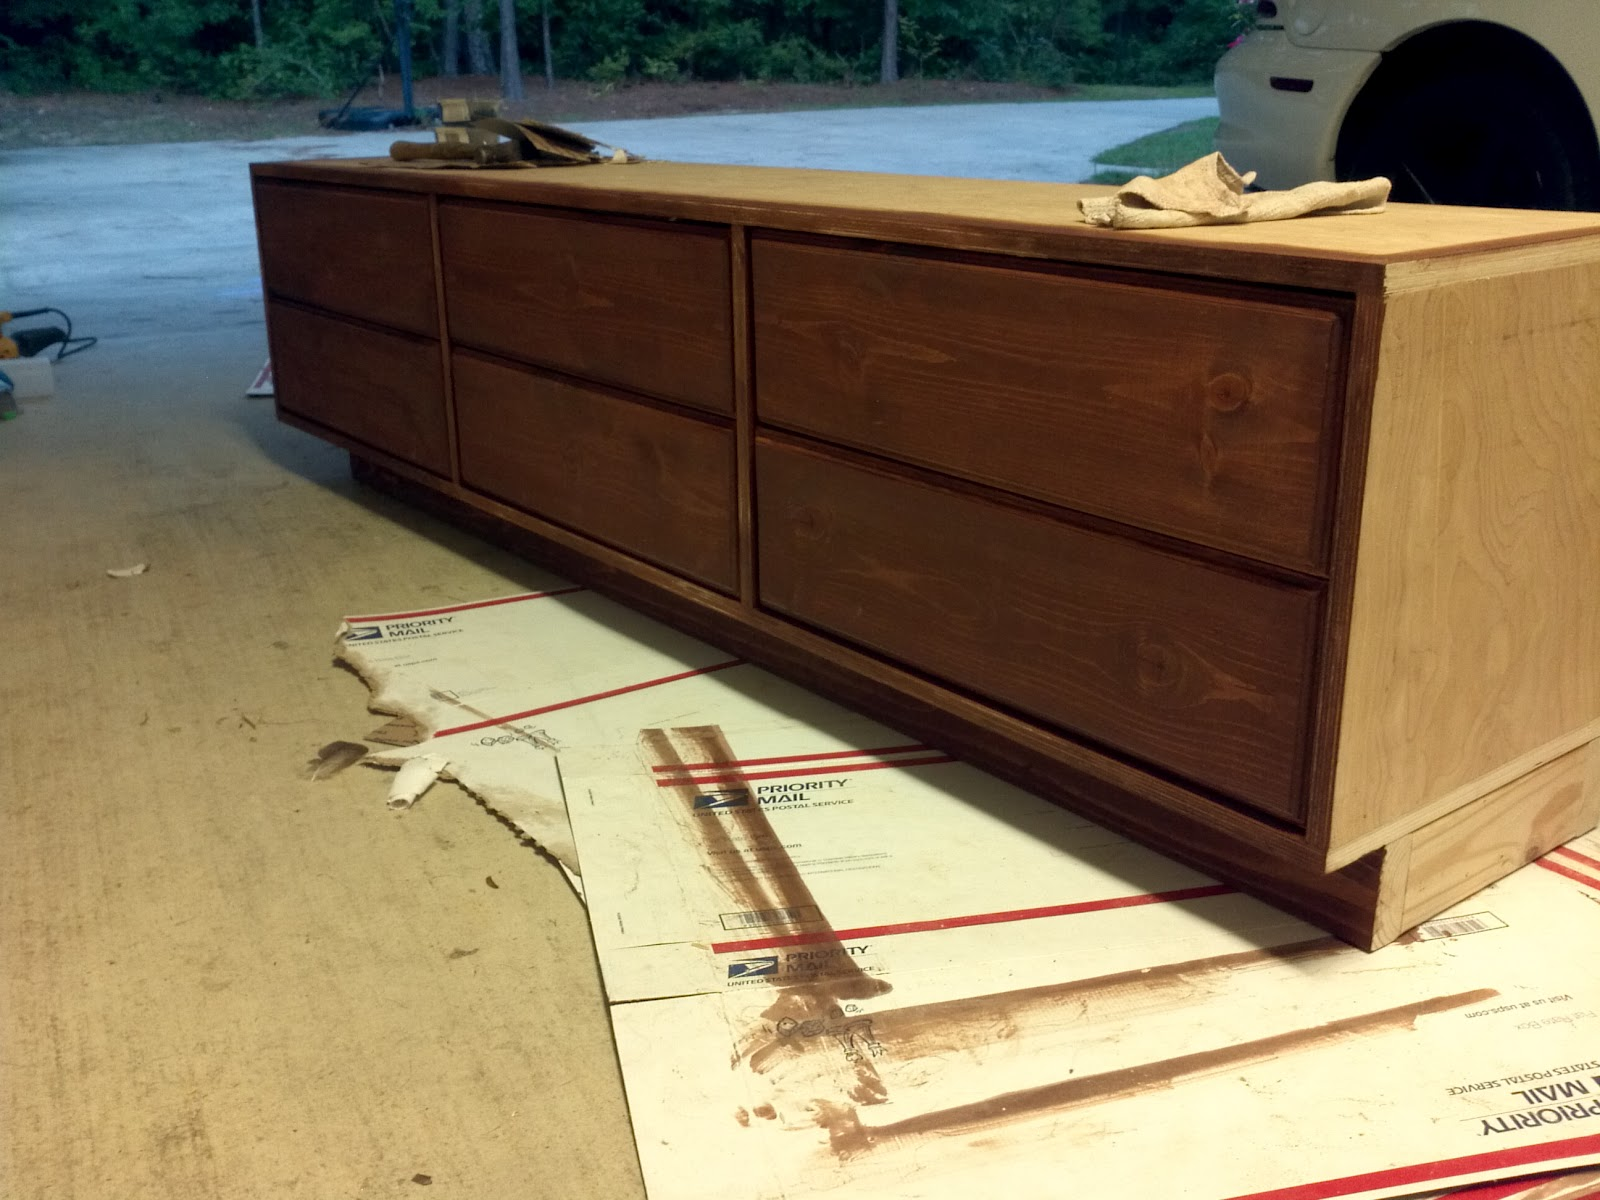 Making A Platform Bed With Storage Drawers | Search Results | DIY ...